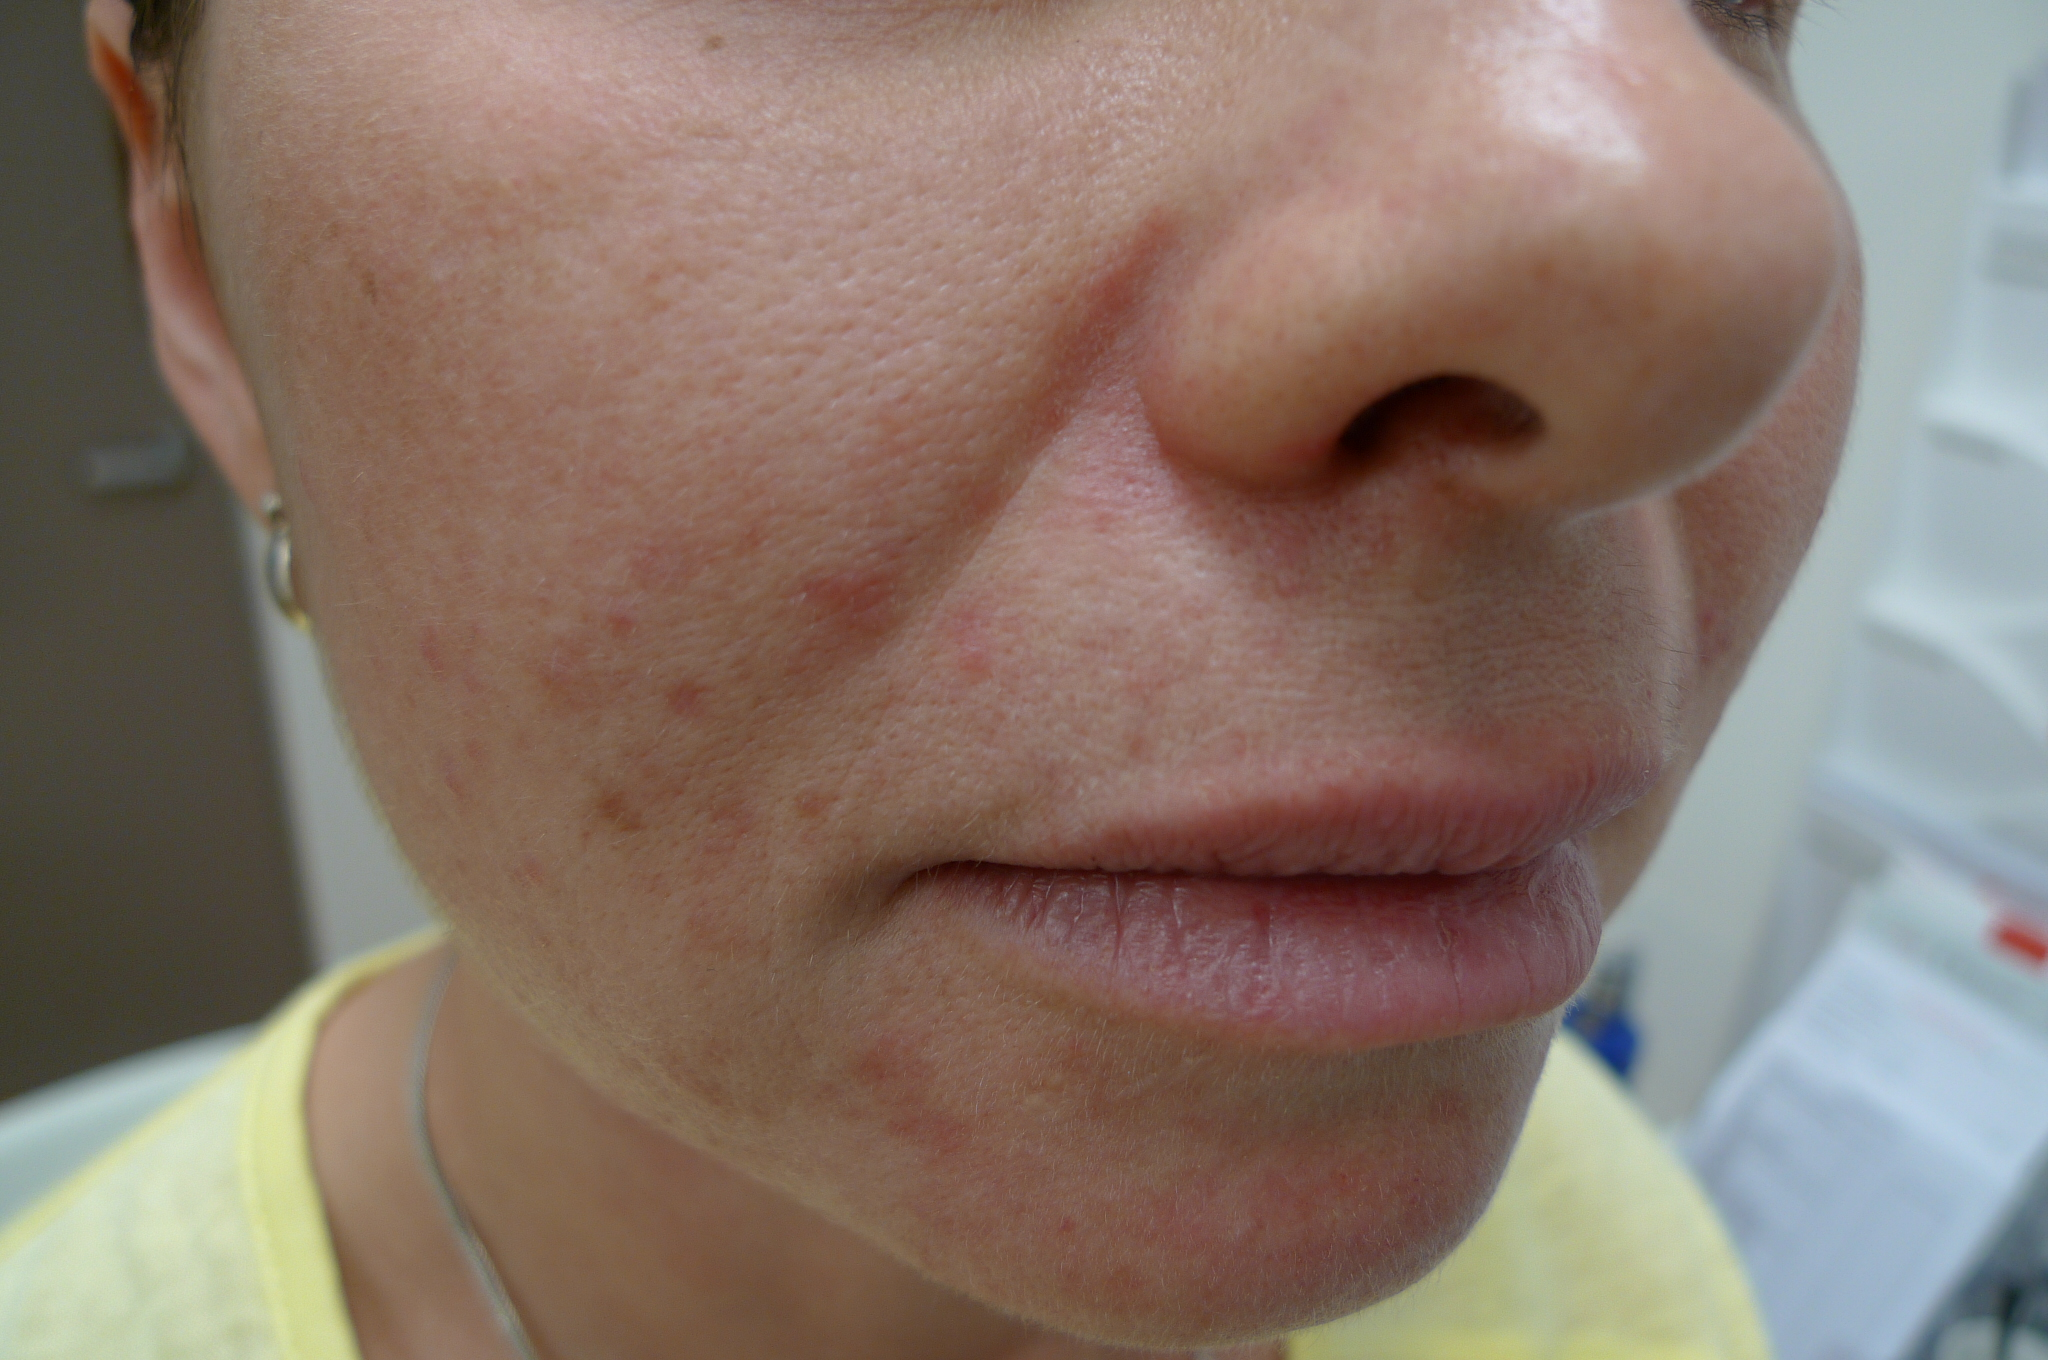 Perioral dermatitis Image reproduced with permission of Dr Davin Lim